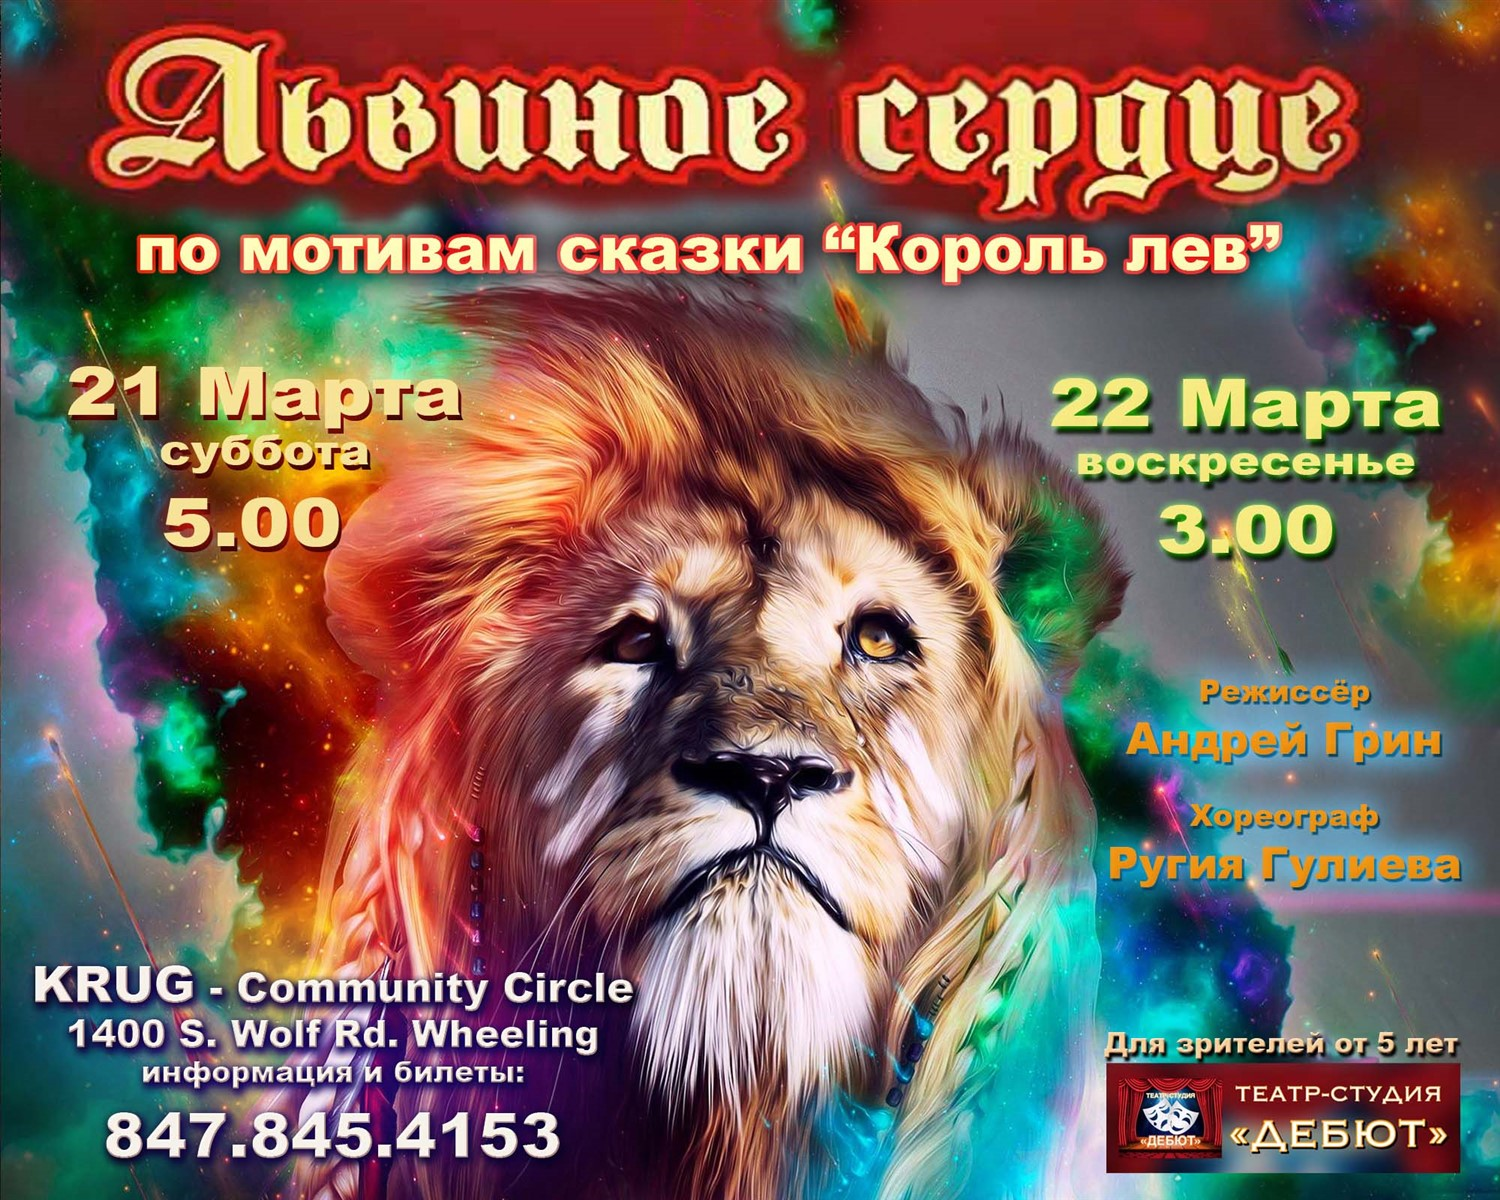 Львиное сердце  on Mar 21, 17:00@Krug Community Center - Buy tickets and Get information on www.debutstudiocorp.art